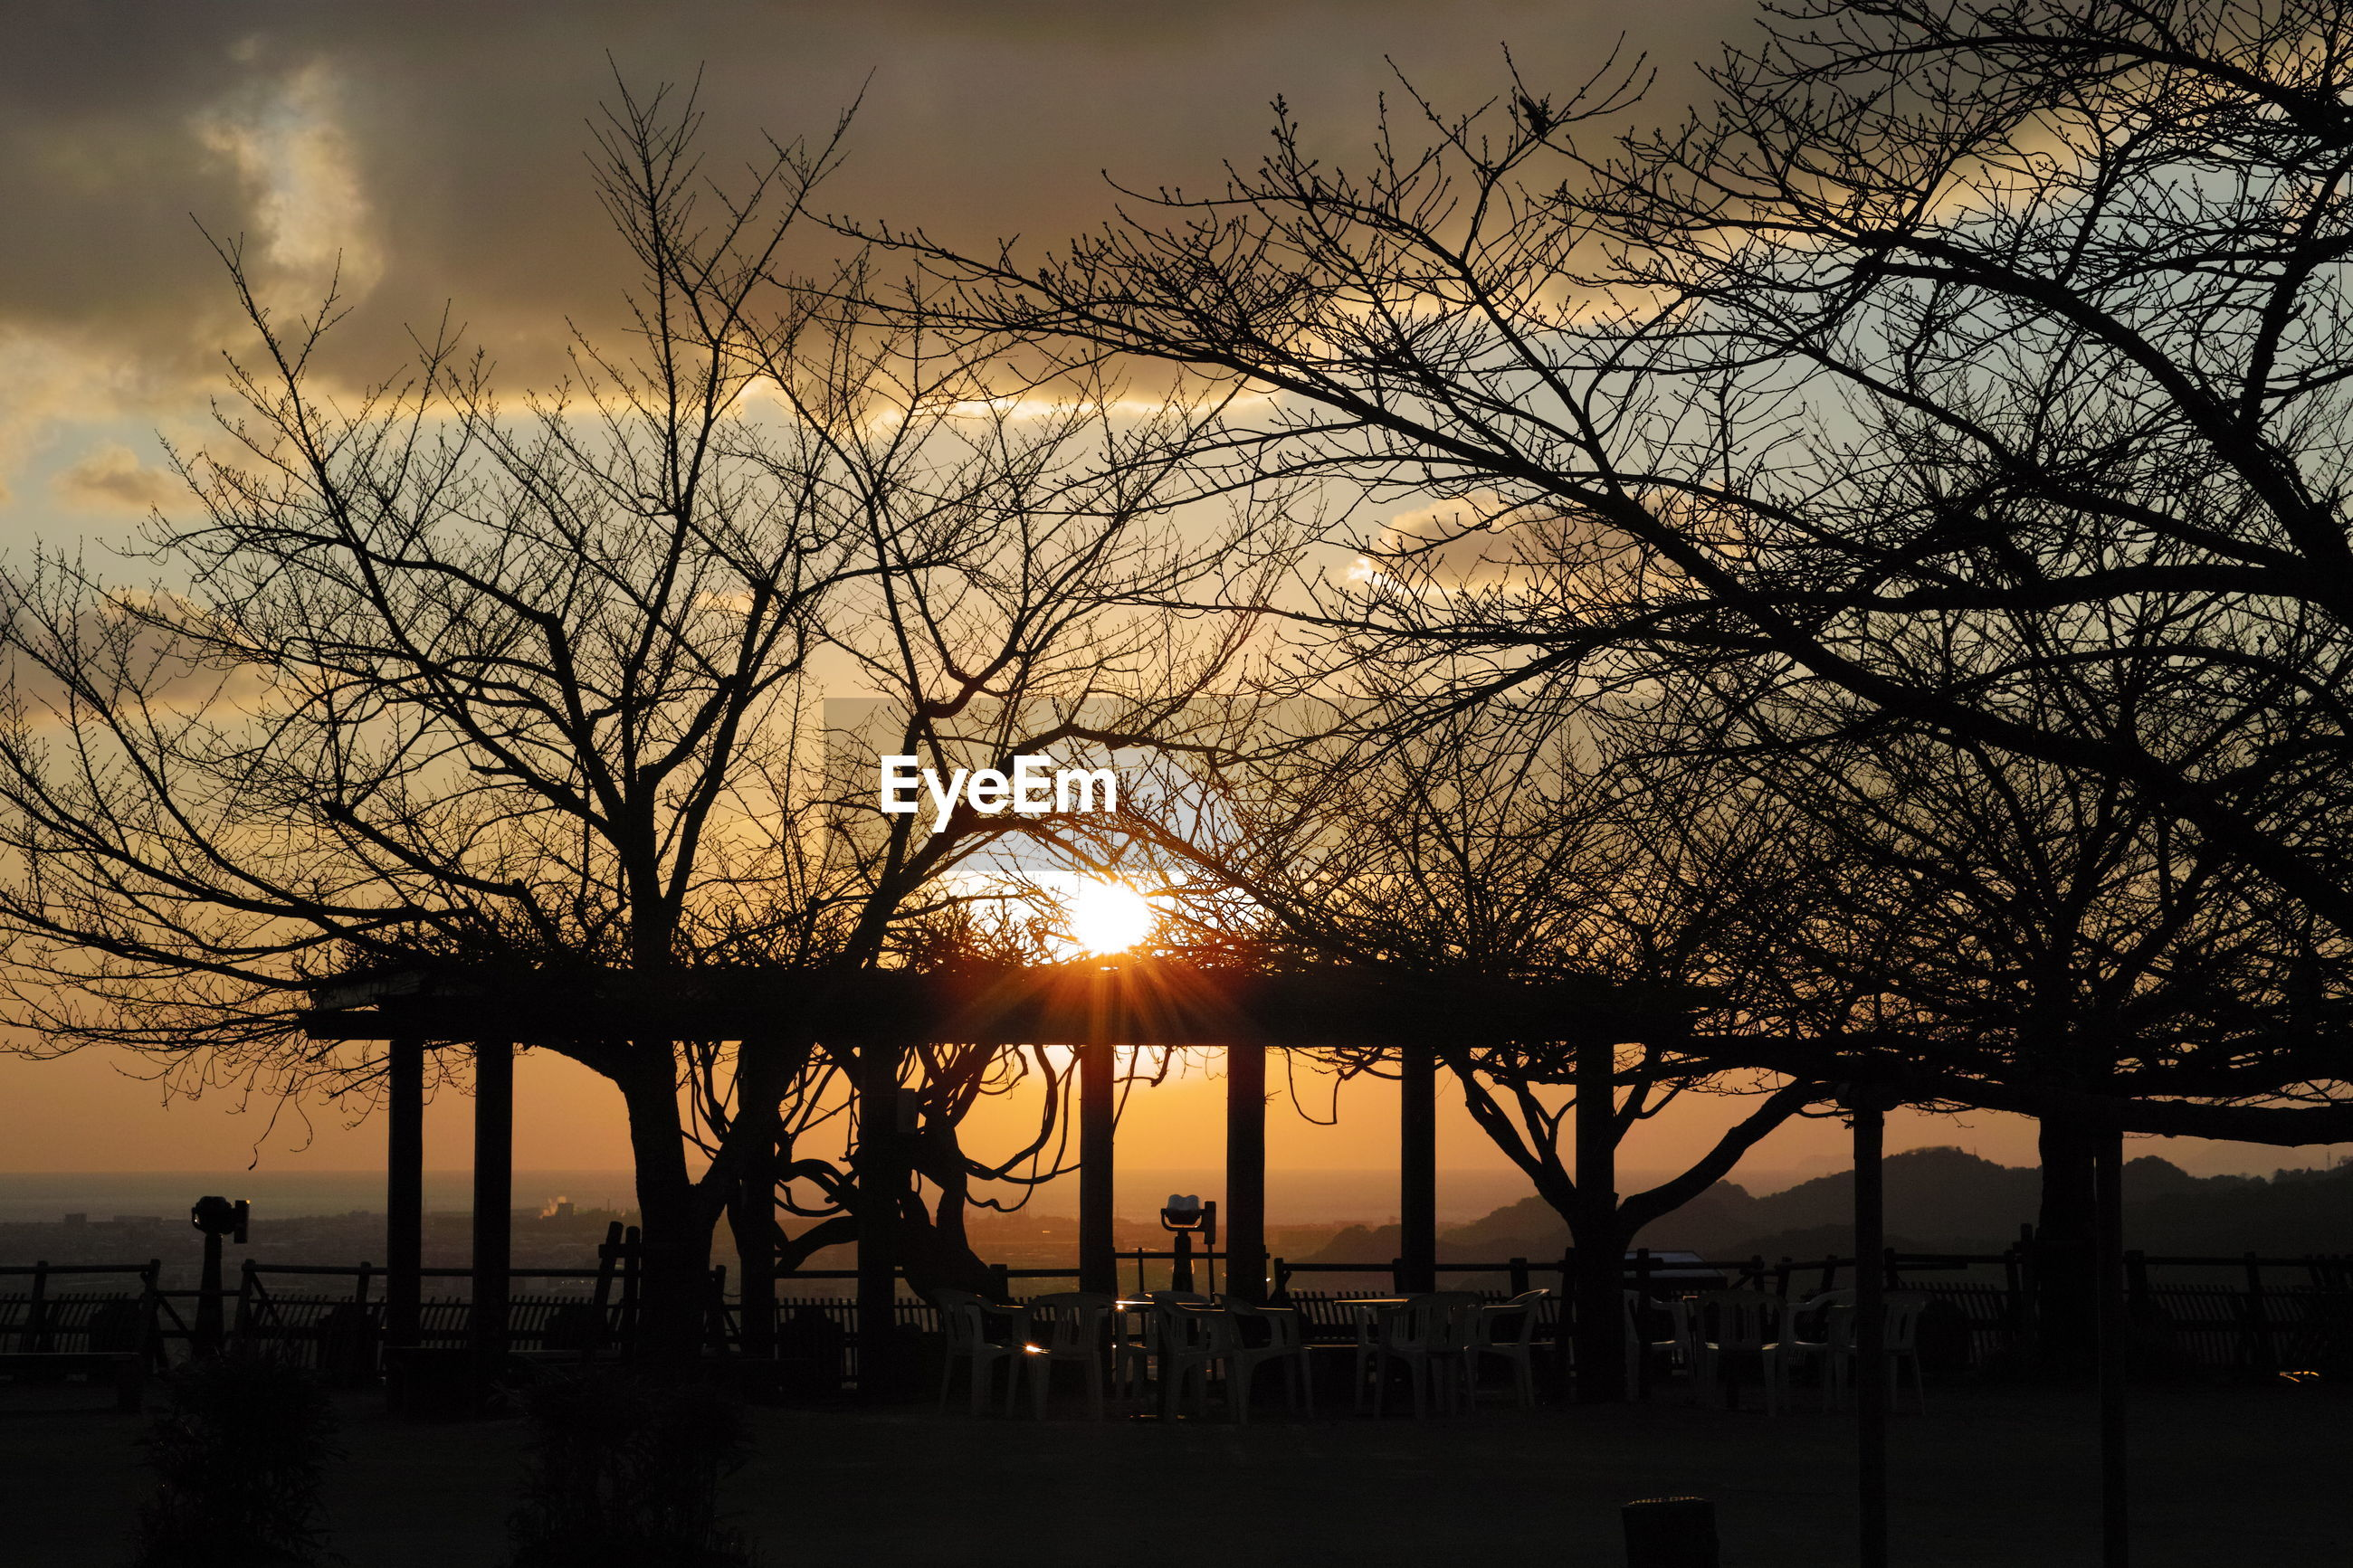 sunset, silhouette, bare tree, tree, sun, sky, scenics, tranquility, tranquil scene, beauty in nature, orange color, branch, nature, water, idyllic, fence, railing, sunlight, outdoors, tree trunk